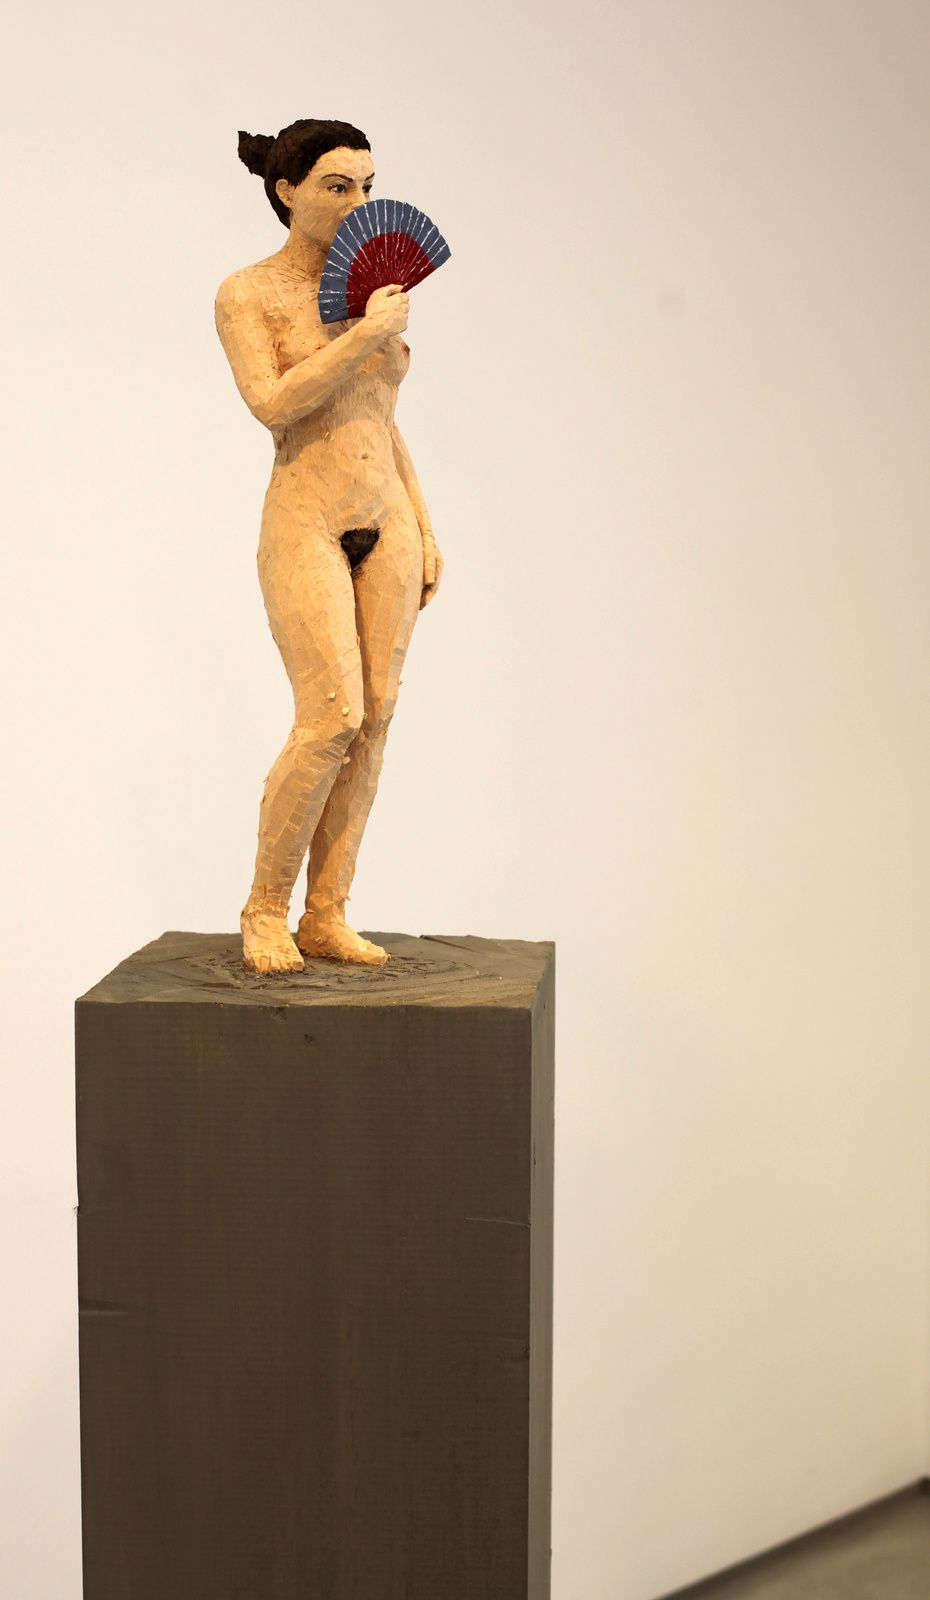 """Femme à l'éventail"", 2018 de Stephan BALKENHOL - Courtesy galerie Ropac © Photo Éric Simon"